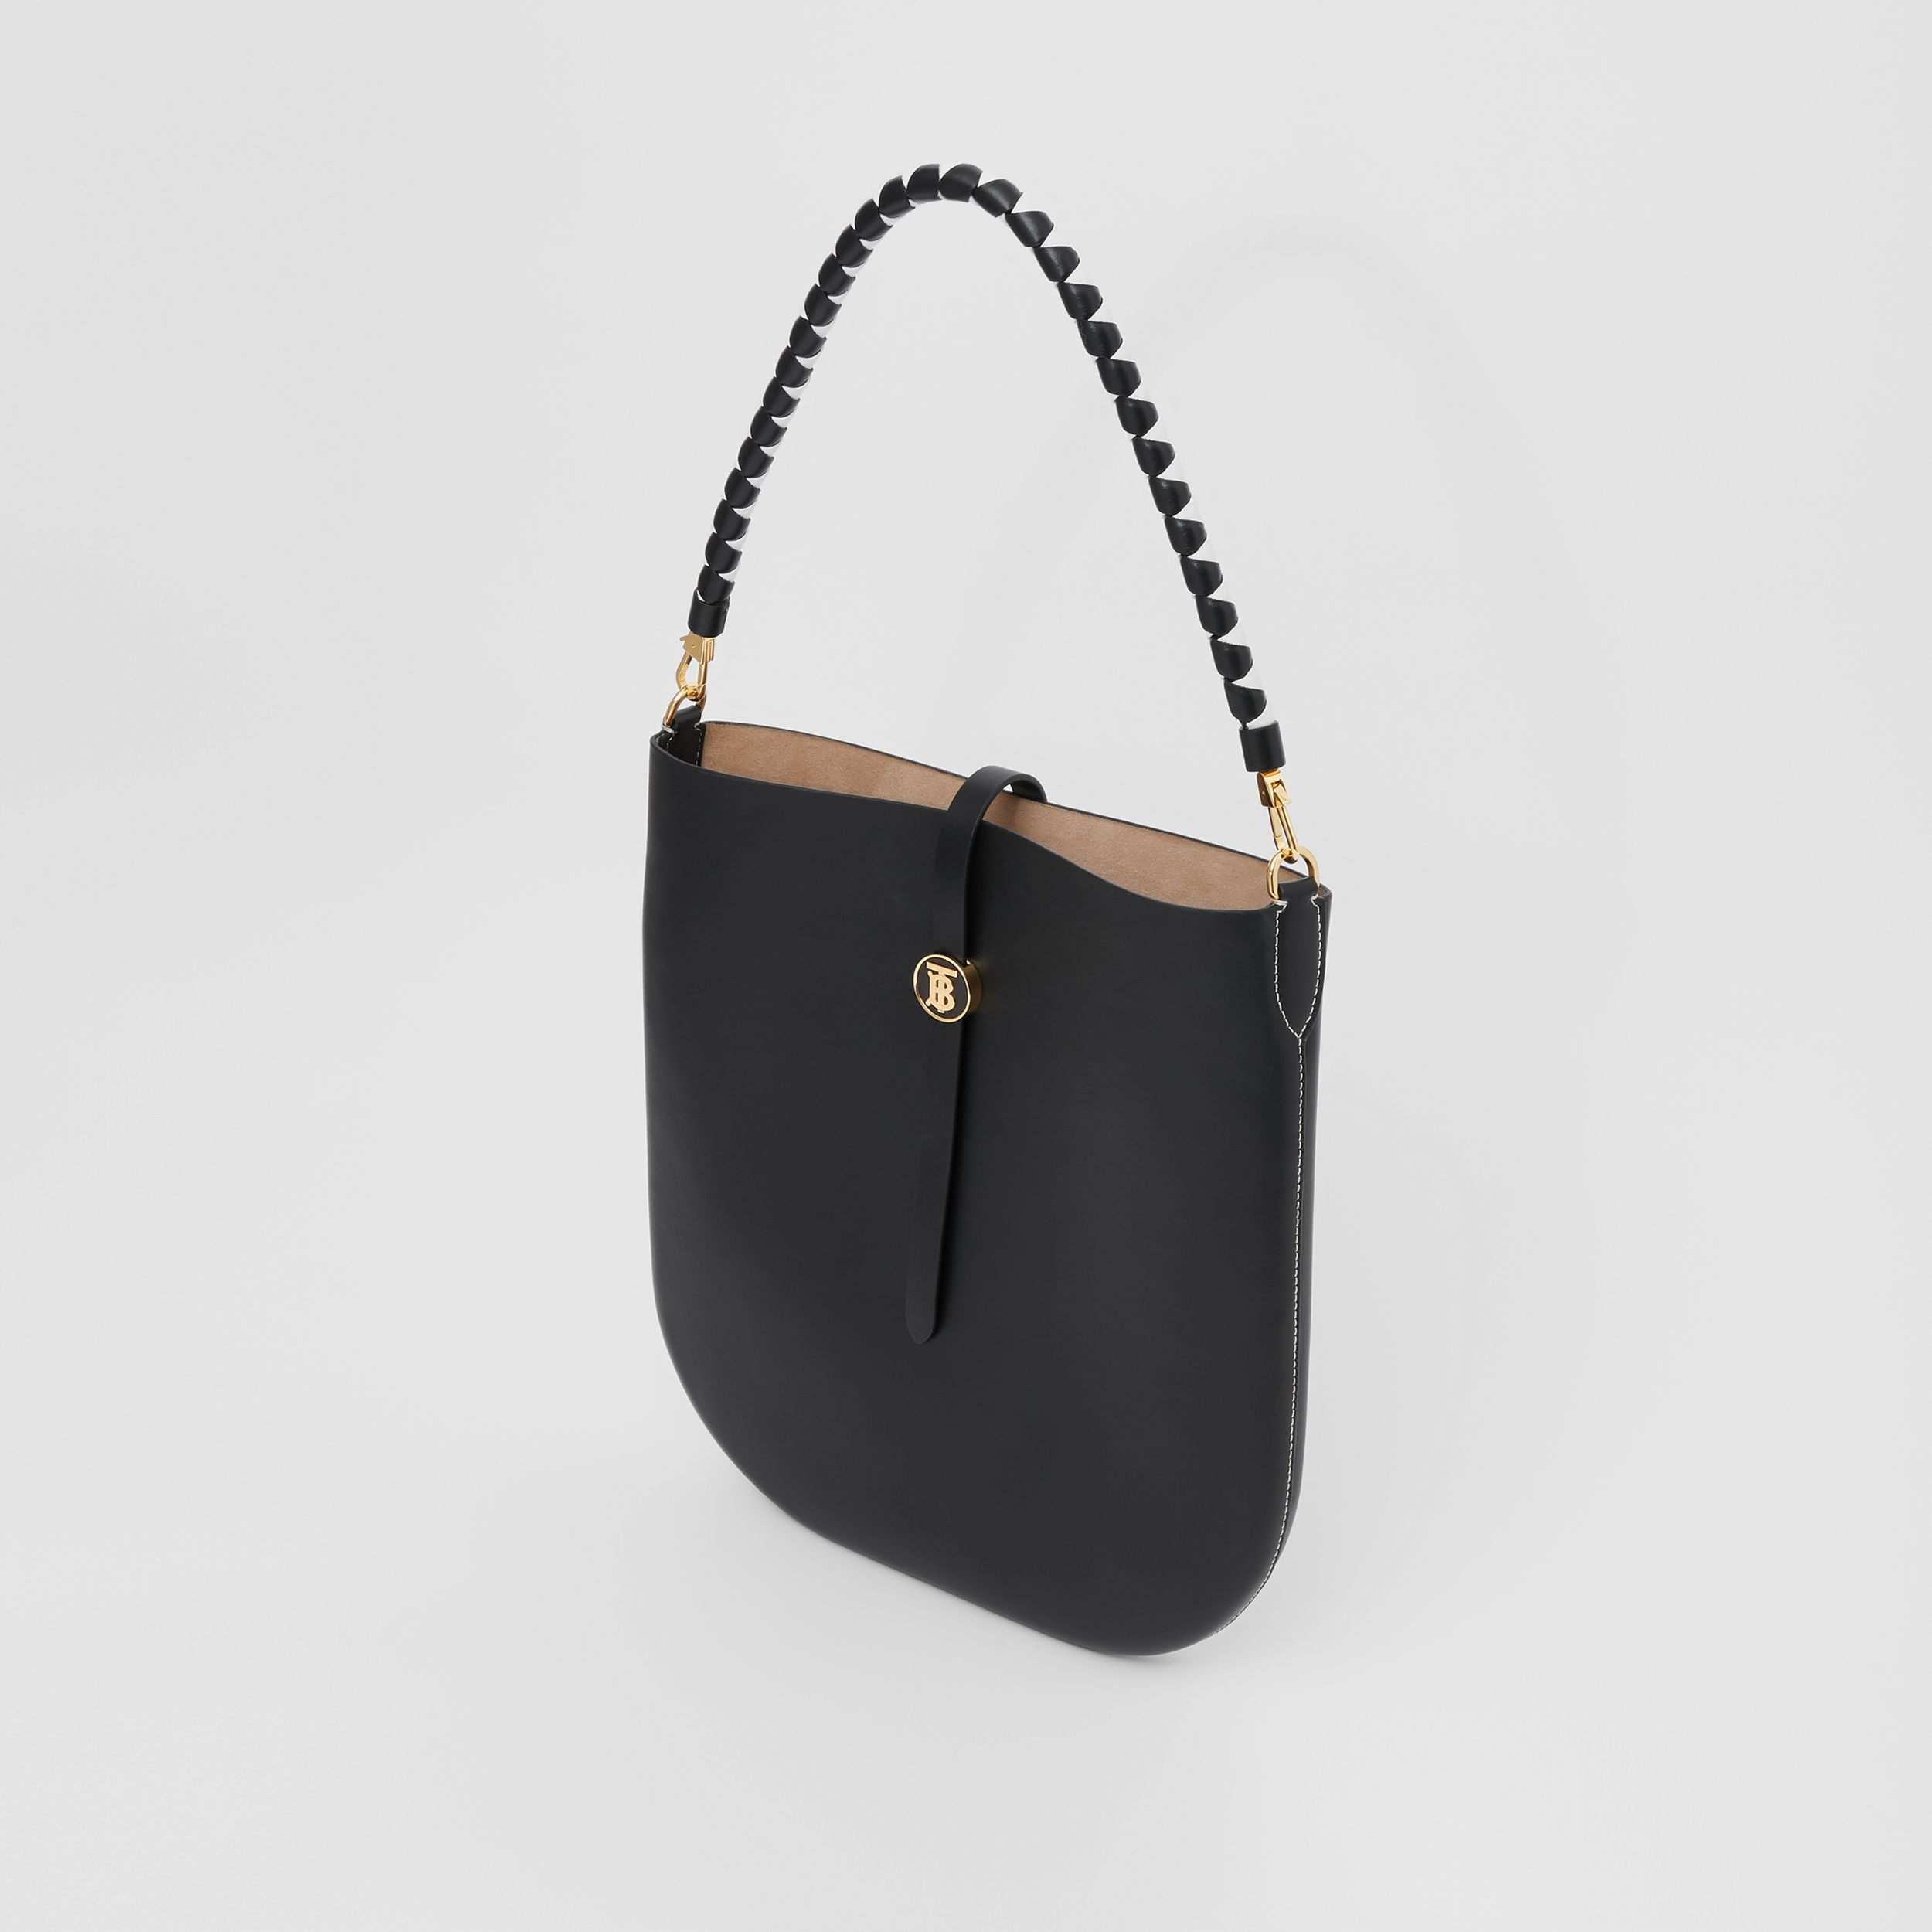 Leather Anne Bag in Black - Women | Burberry - 3